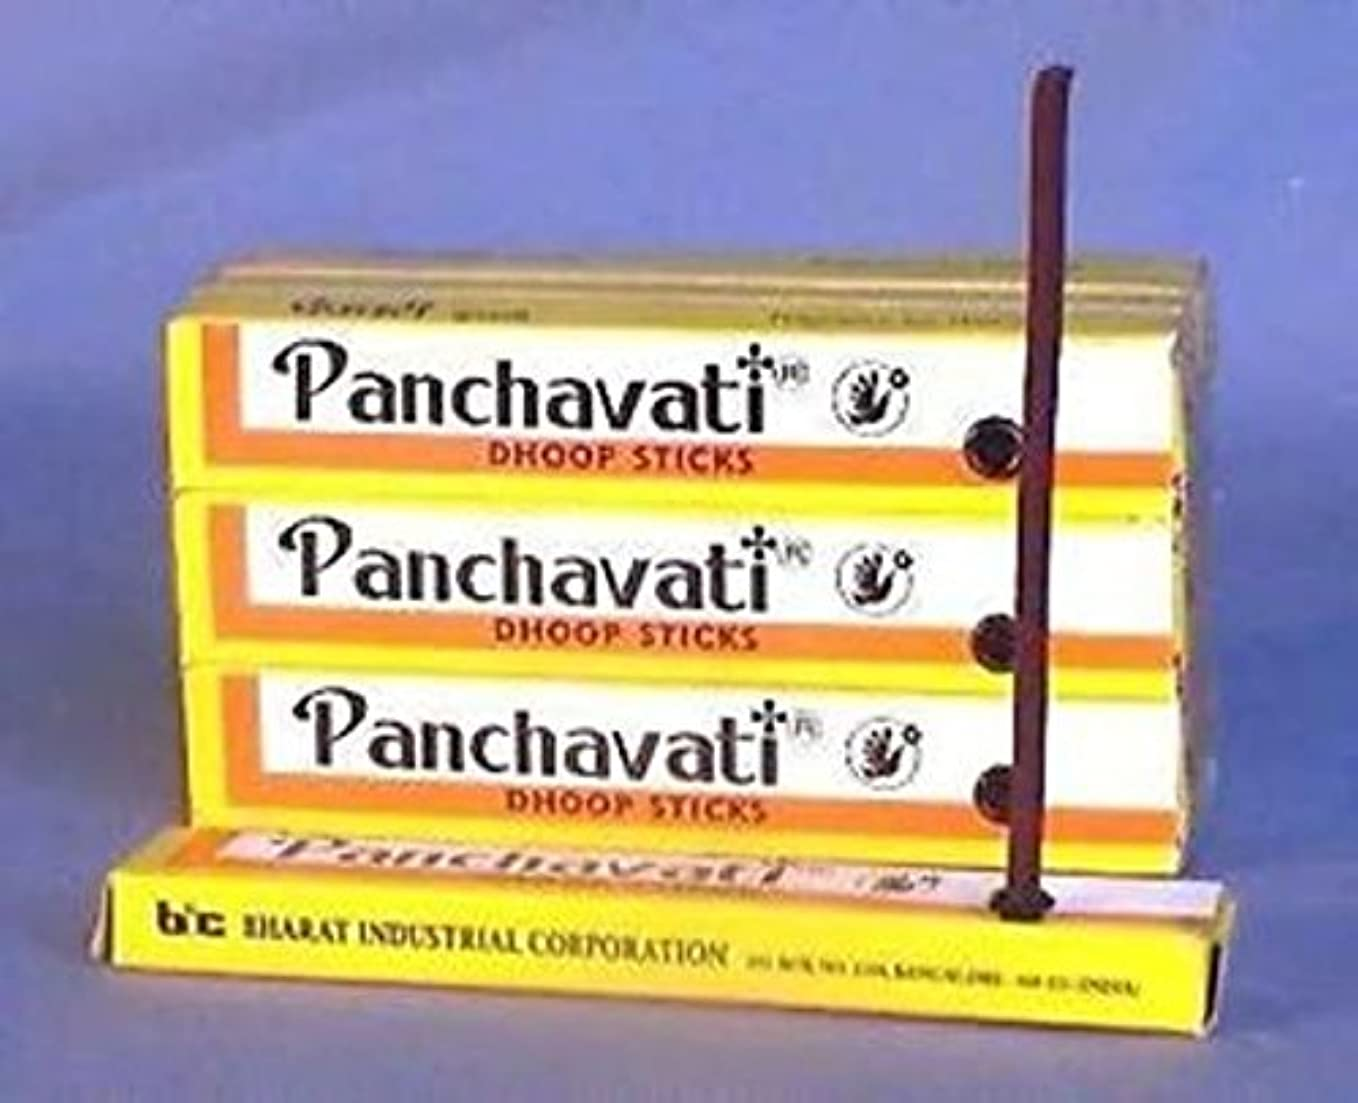 コミュニティ異常スカルクPanchavati Dhoop Sticks Small Incense 48 Boxes x 10 = 480 Sticks